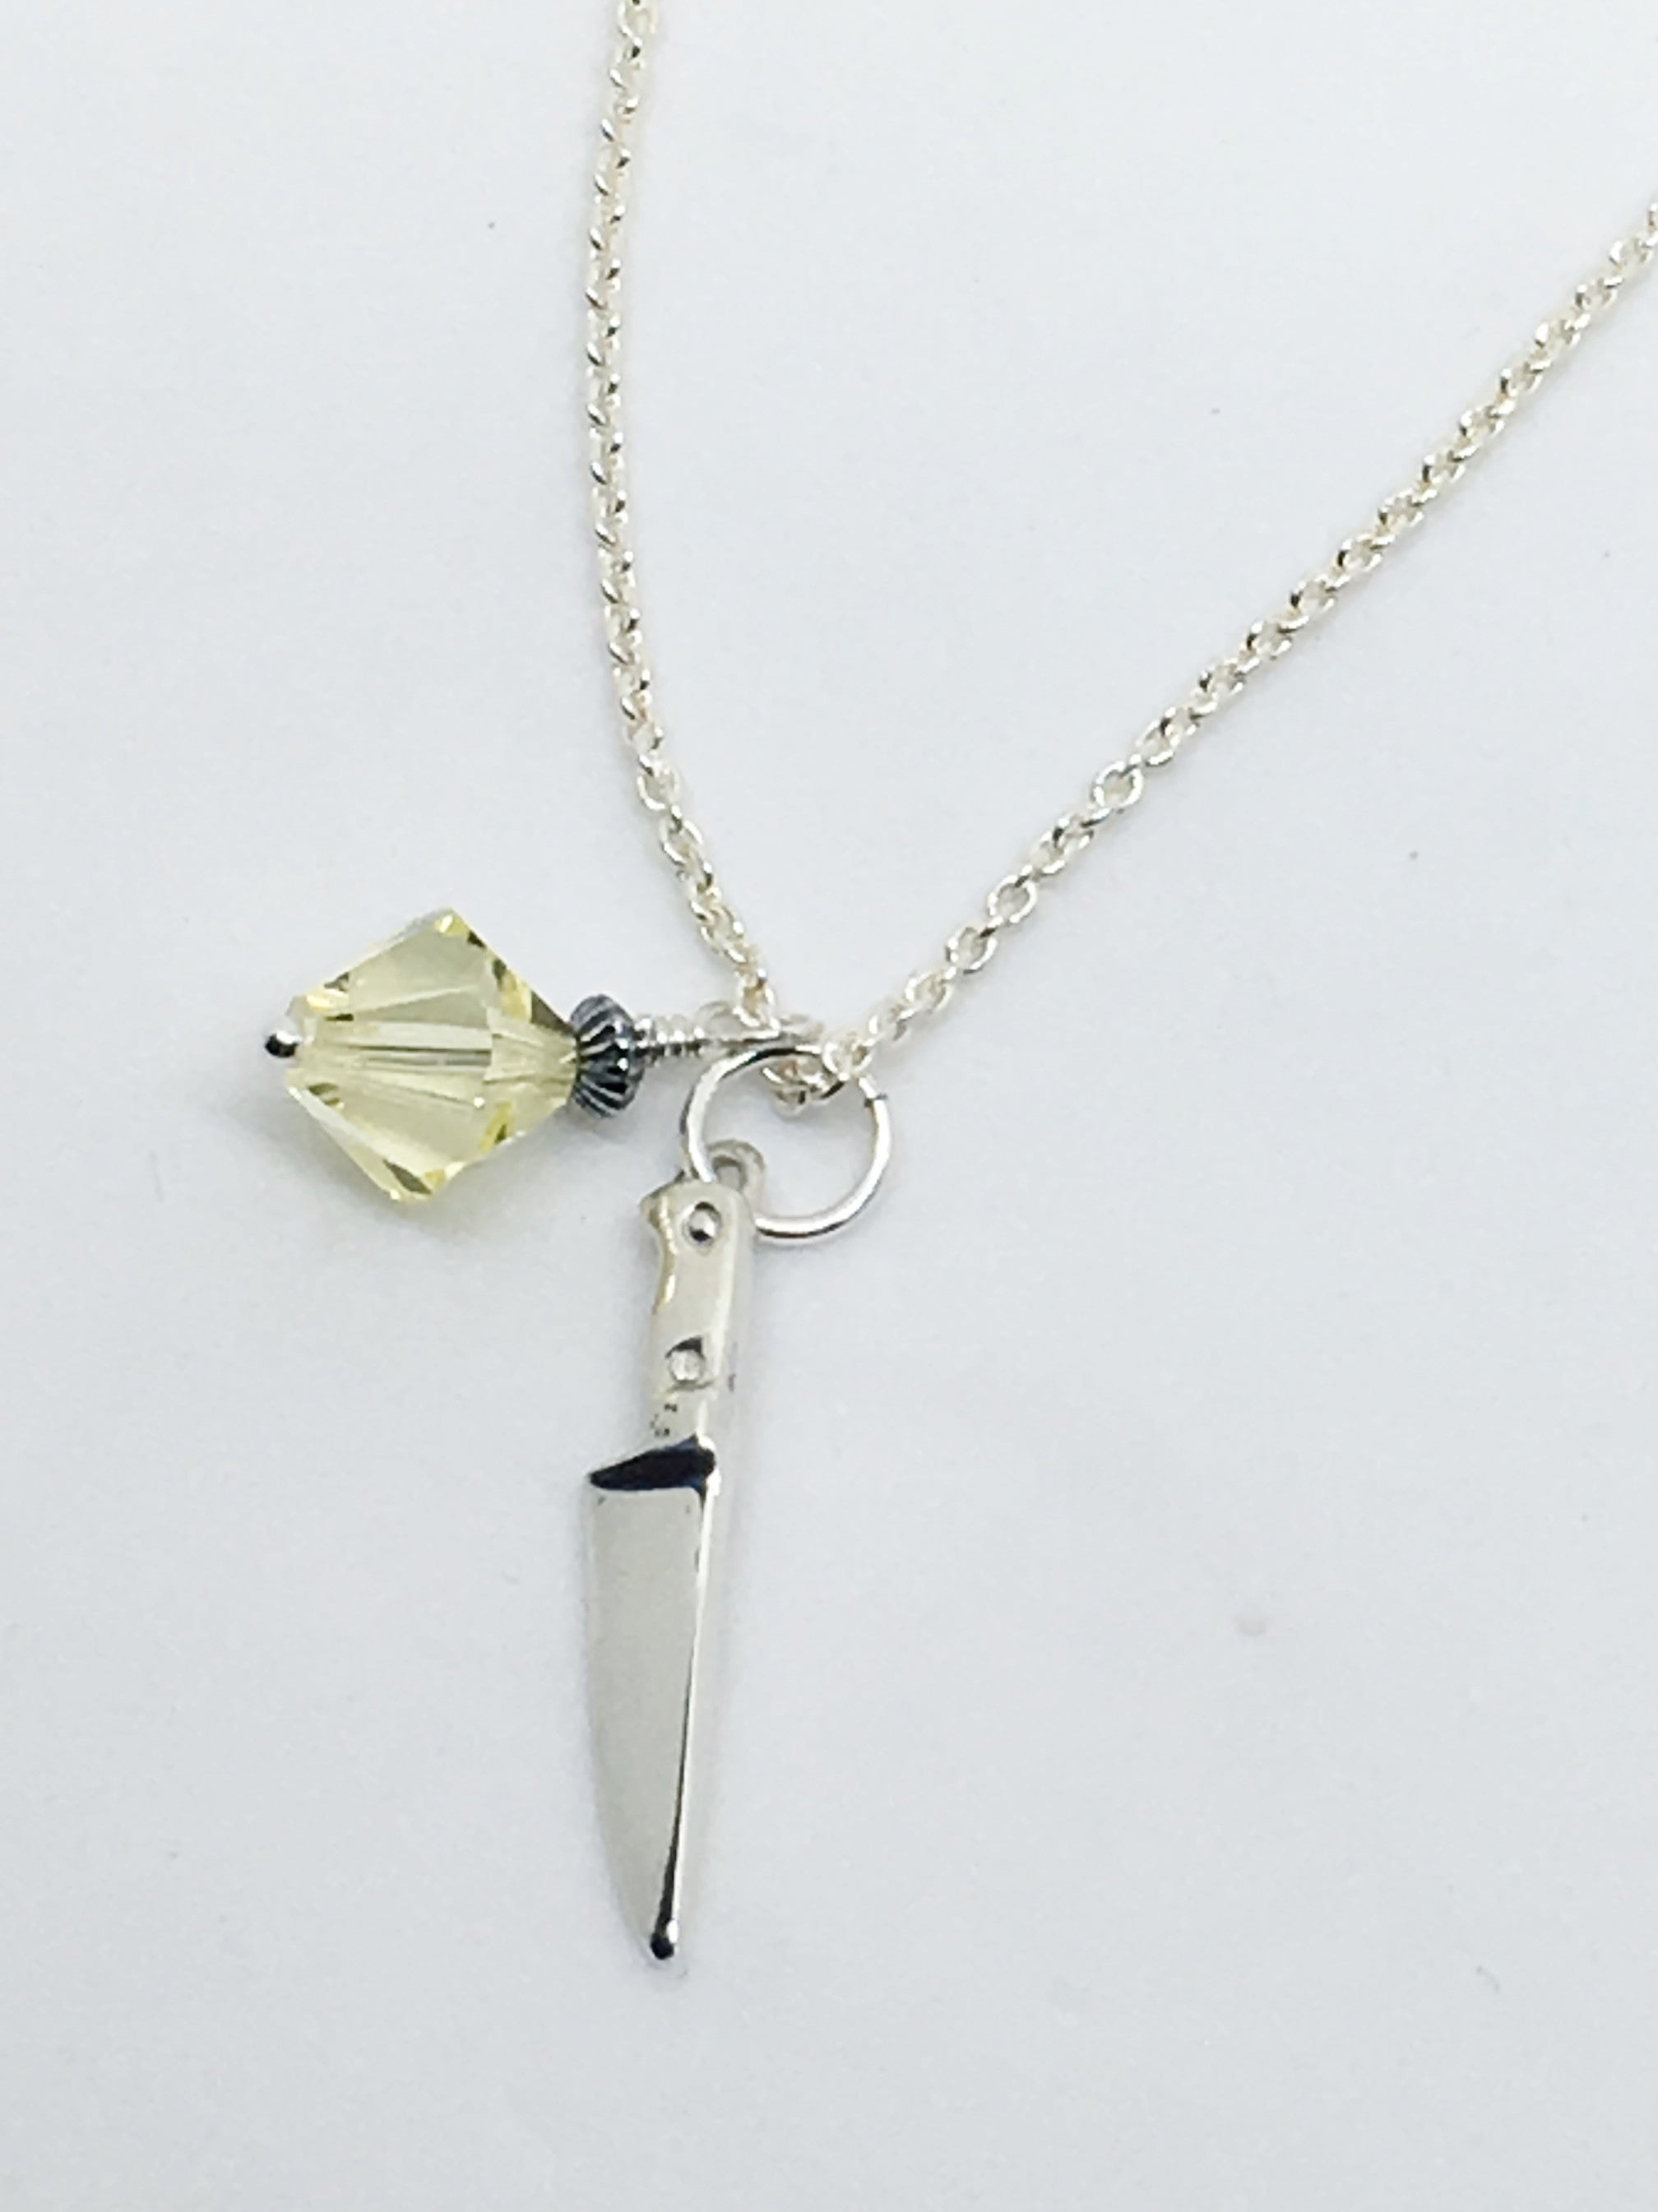 Chef's Knife Pendant Necklace with Yellow Swarovski Crystal Charm